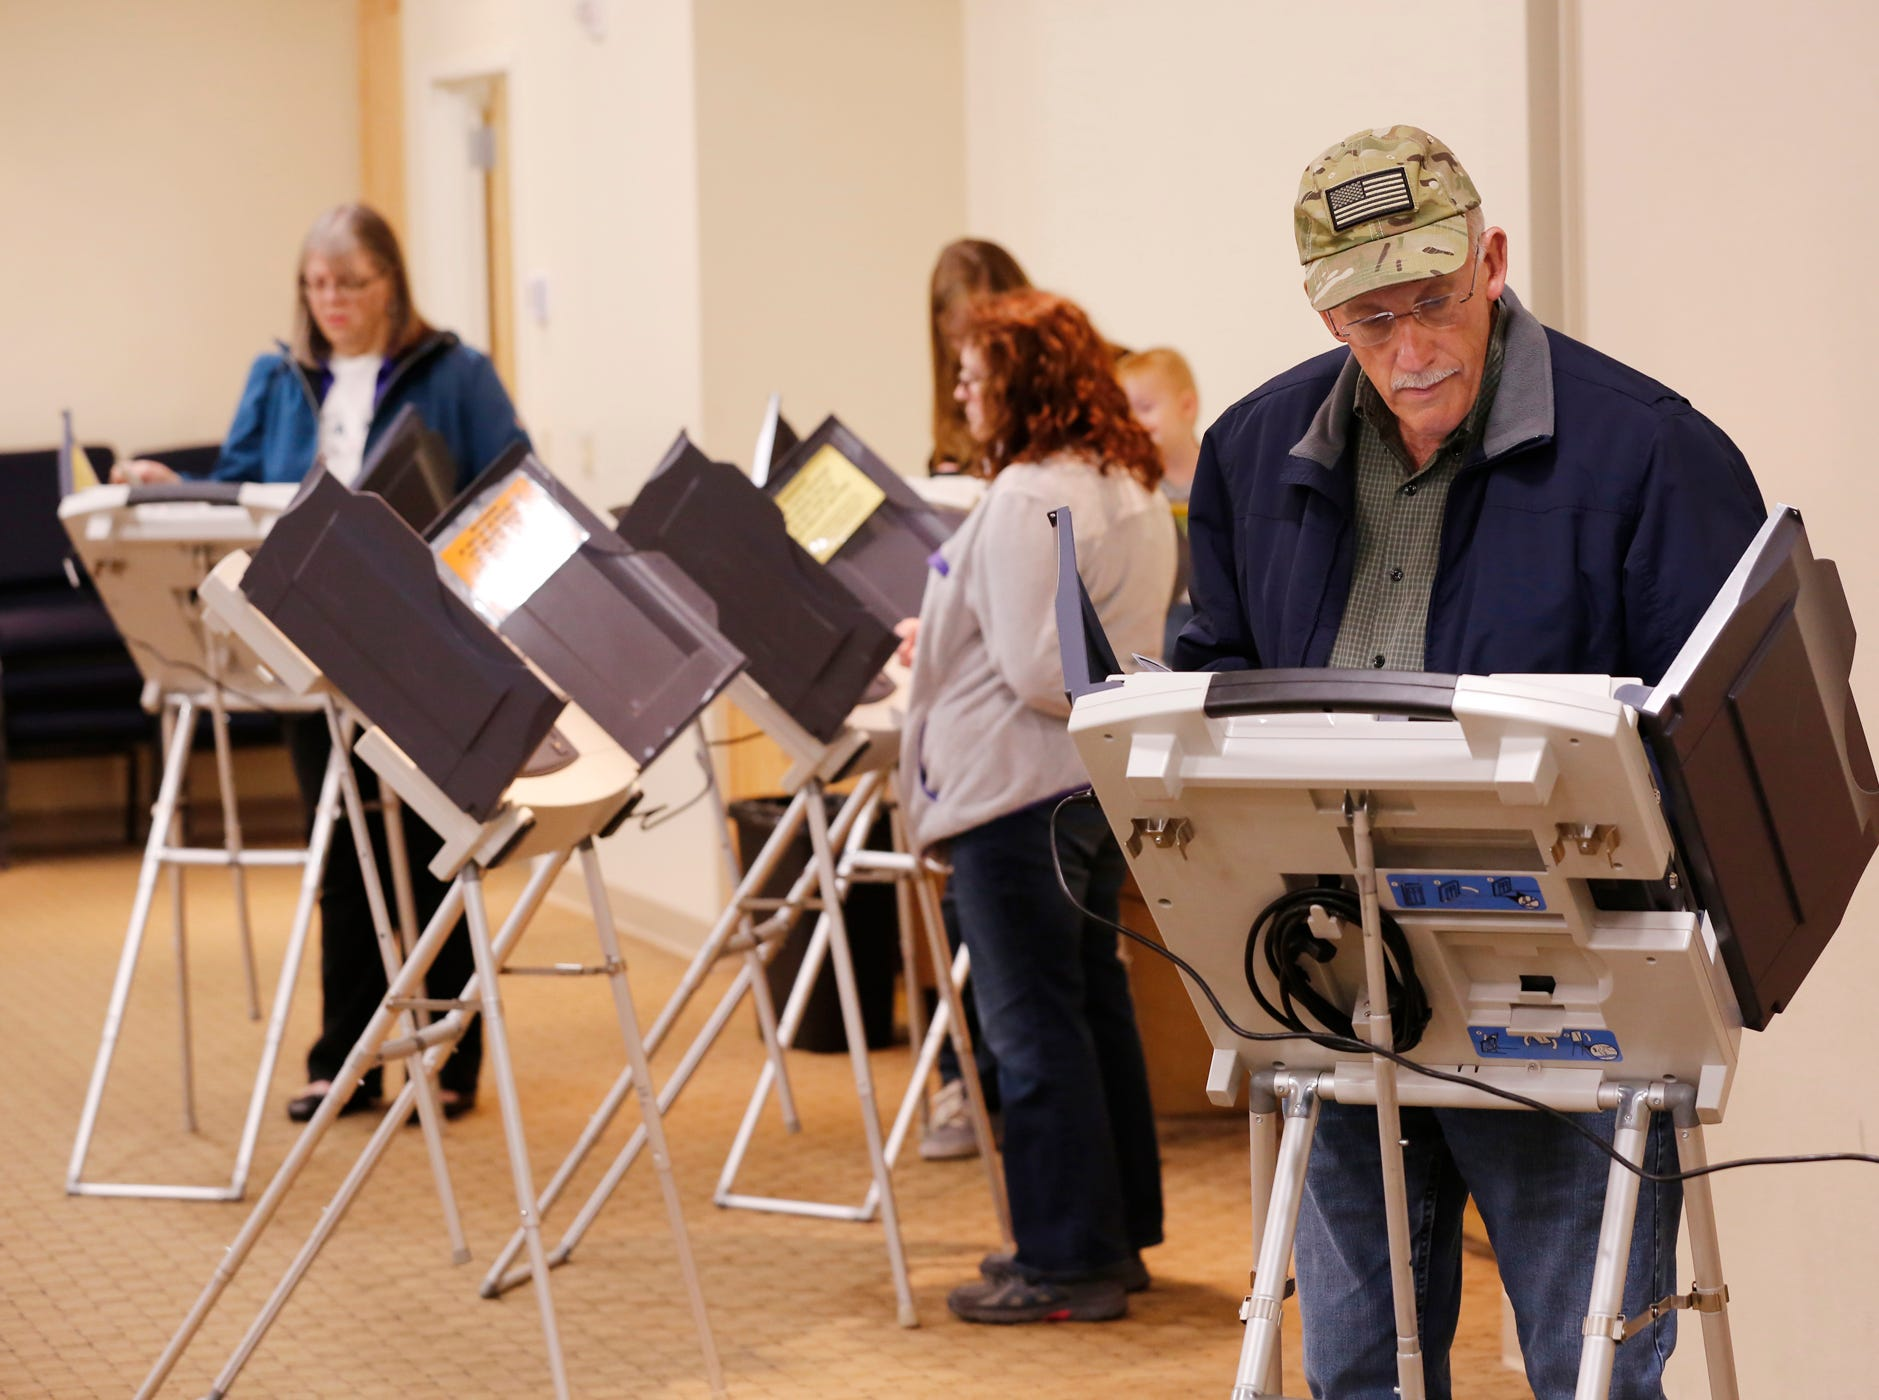 Residents cast their ballots at Faith Community Center Tuesday, November 6, 2018, in Lafayette.